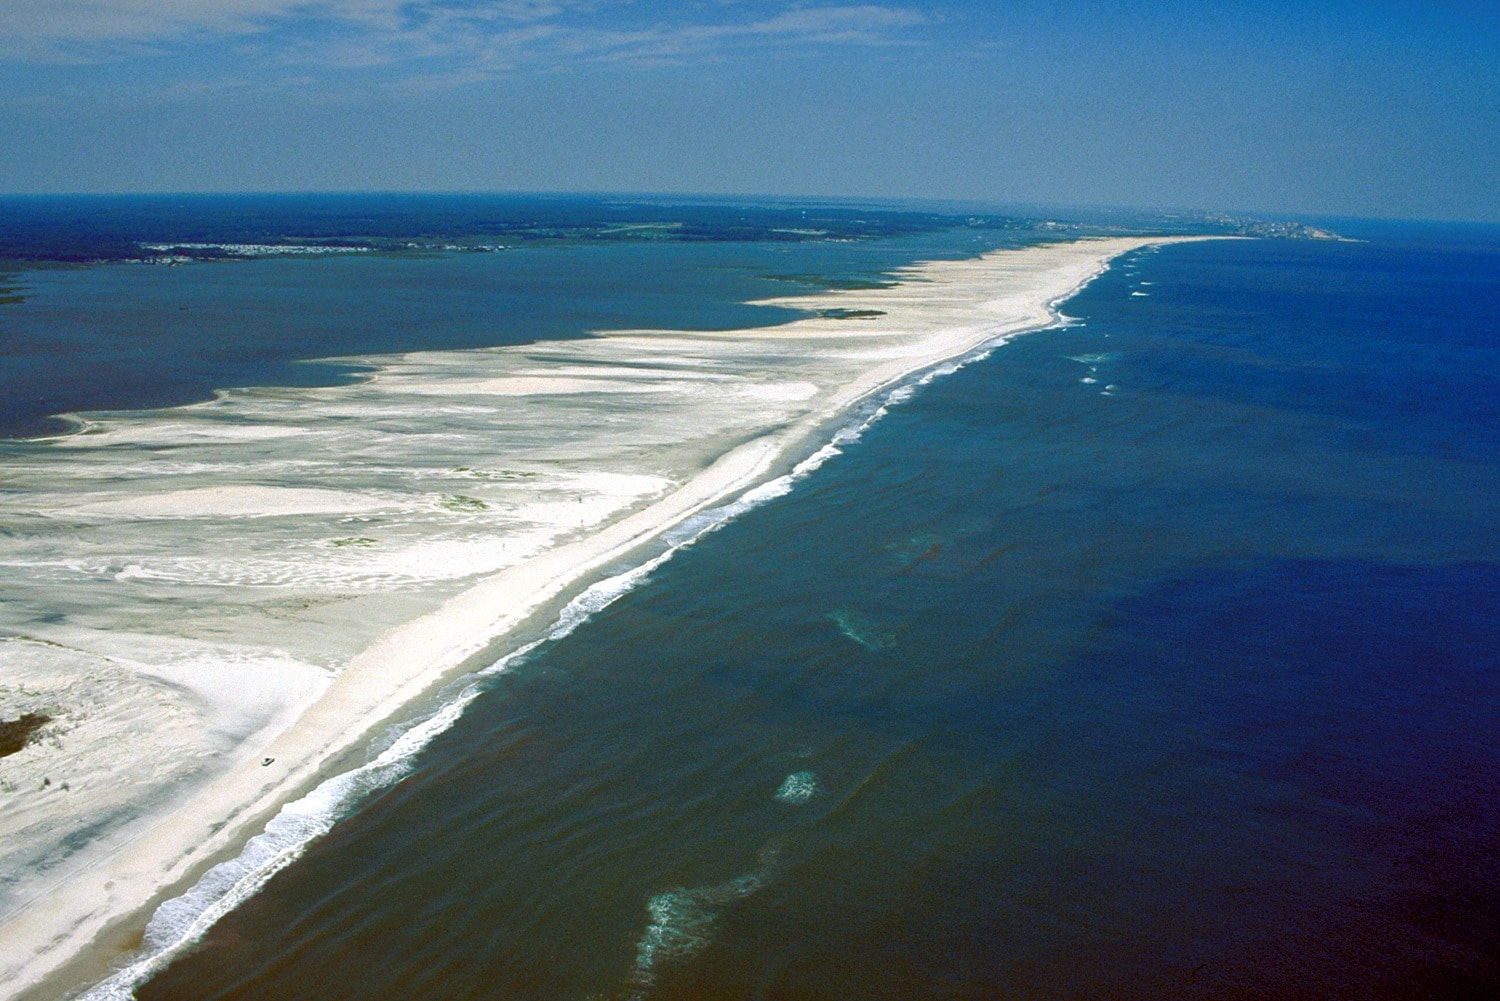 Plan a road trip to Assateague and Chincoteague Island with the tips in this blog post